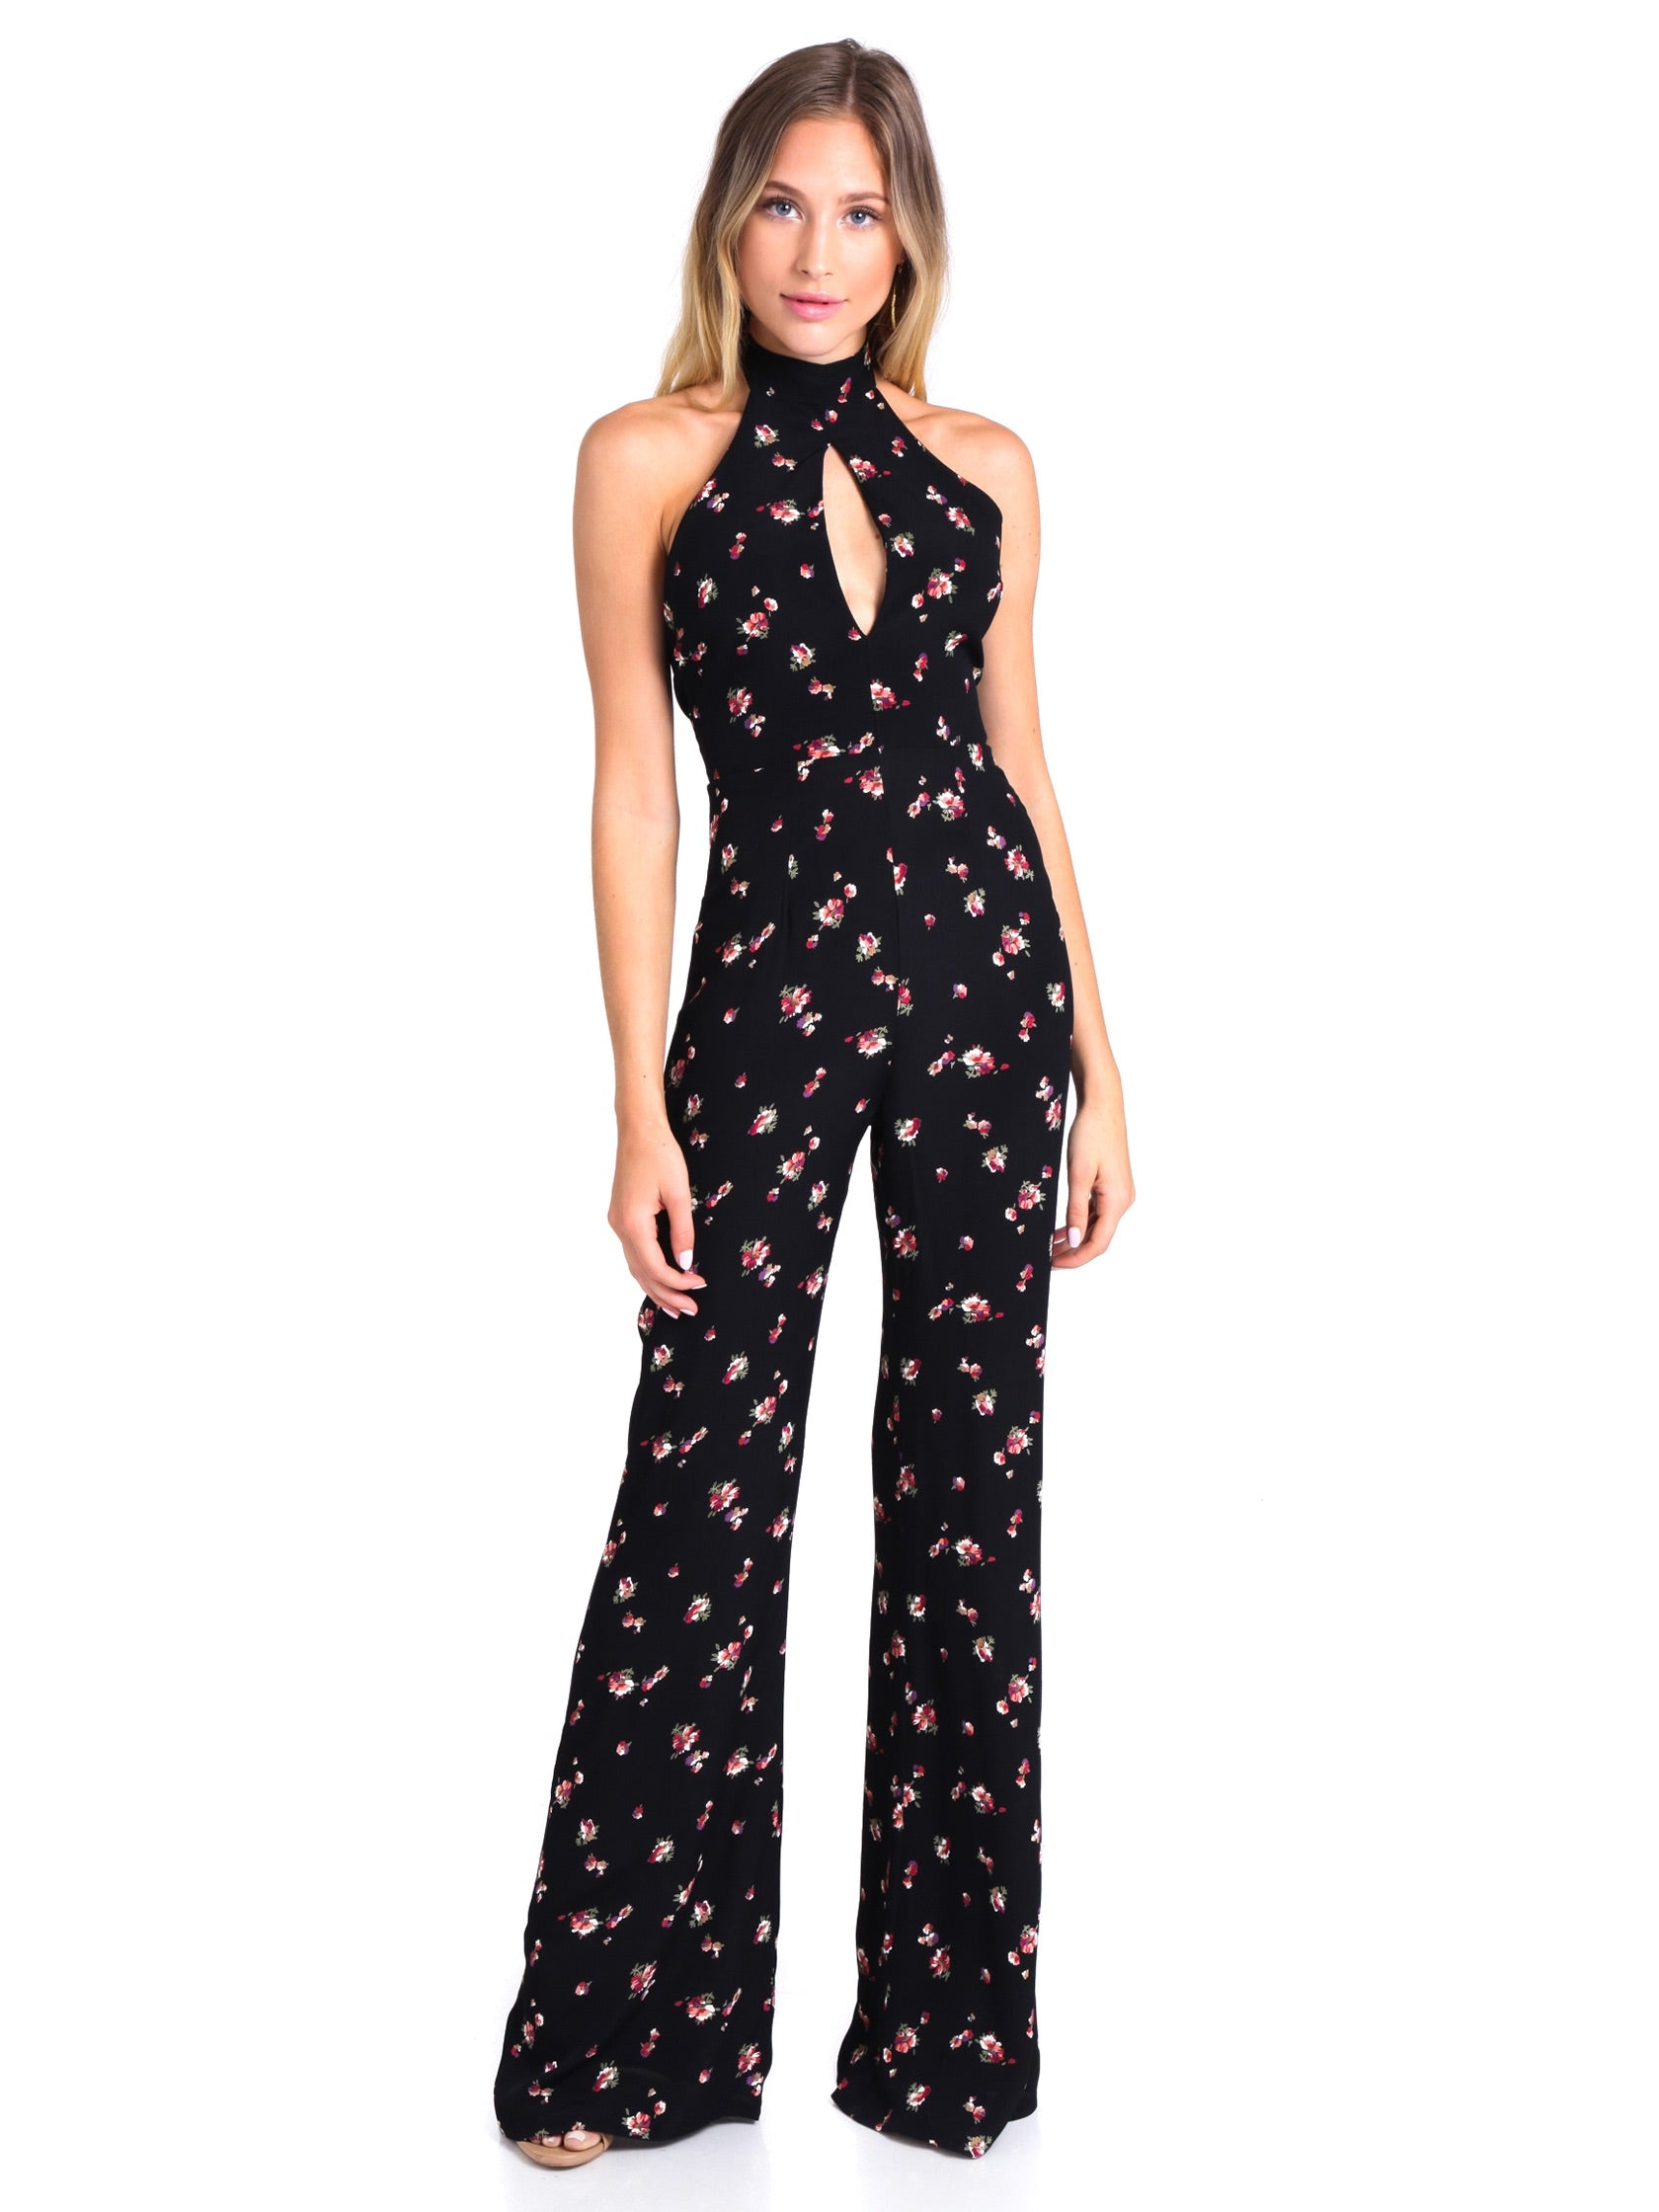 Girl outfit in a jumpsuit rental from Flynn Skye called Eliana Jumper